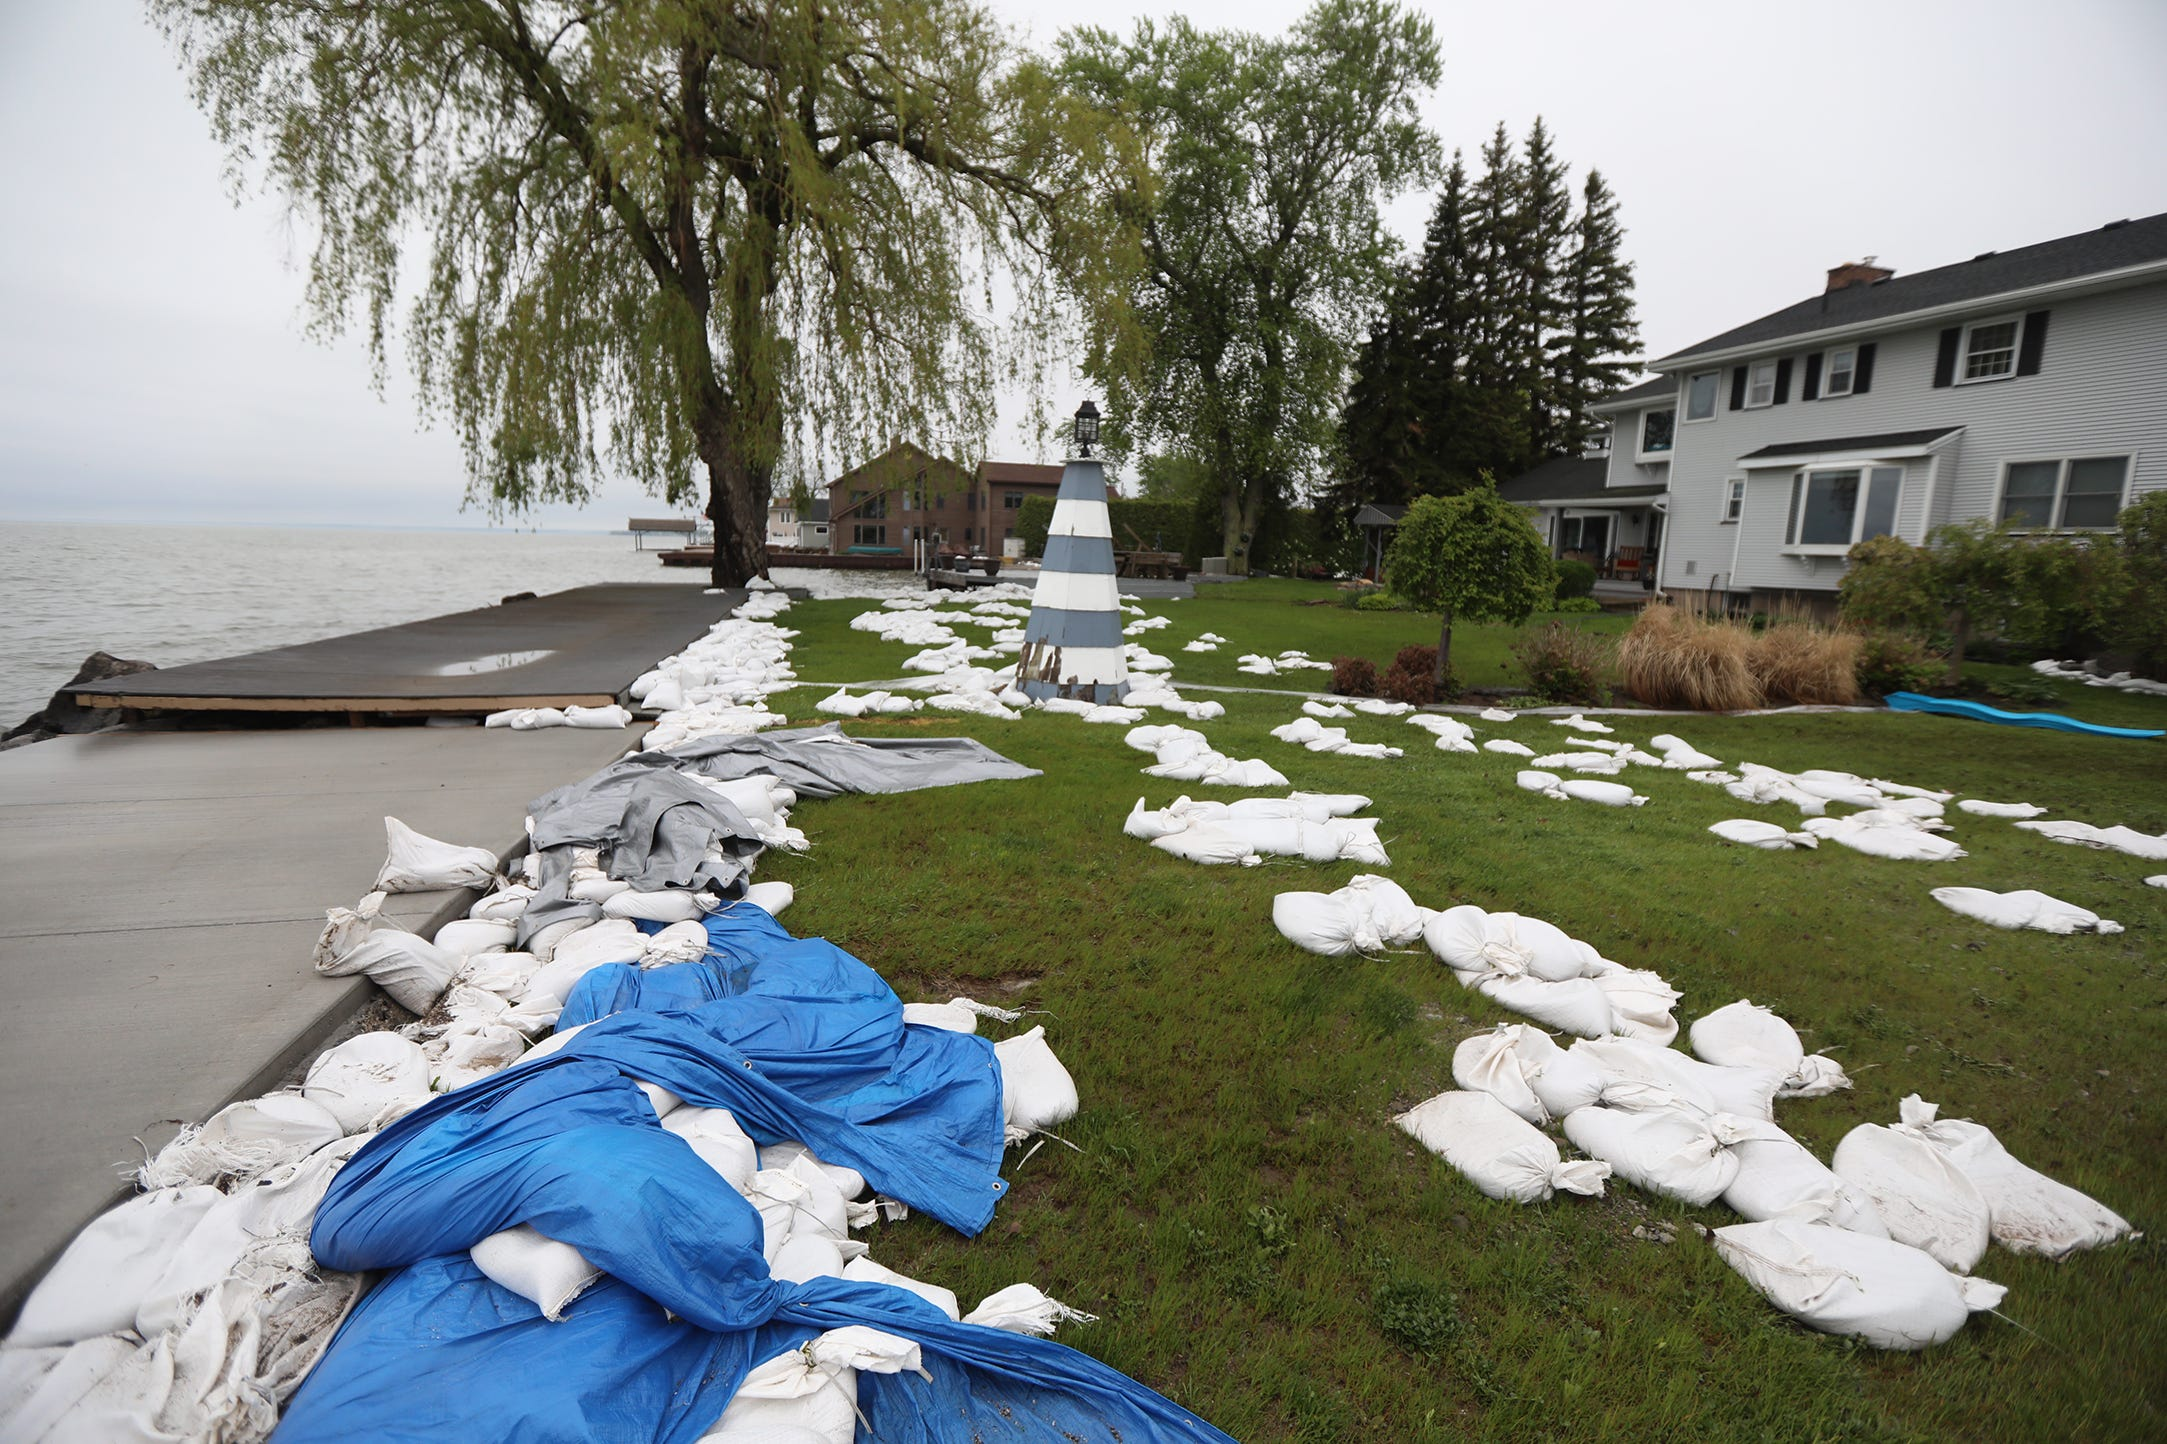 Edgemere Drive flooding: 'This is the leftovers from yesterday's event'